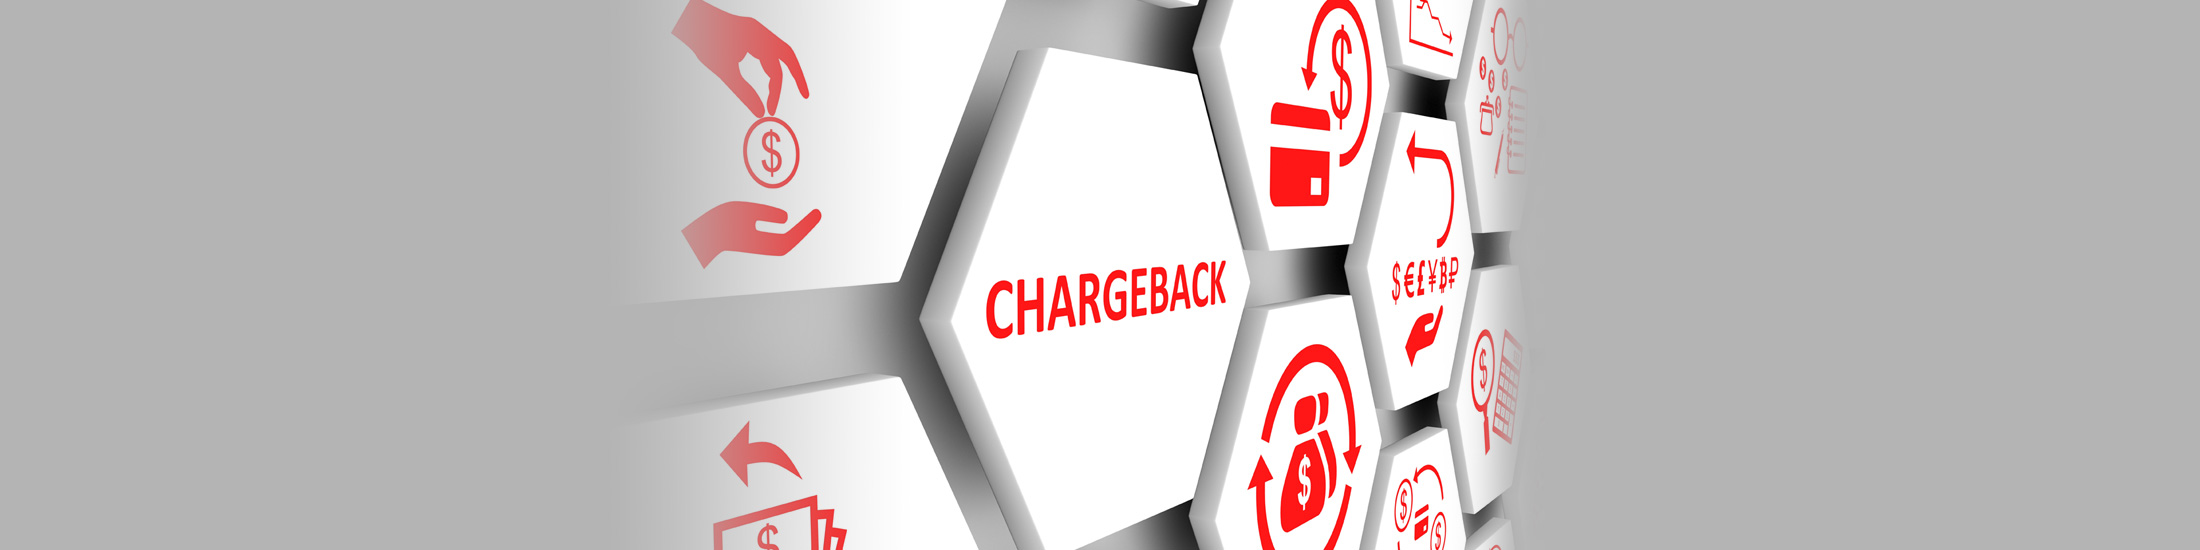 White Paper: Burdensome Chargeback Process Needs Changes